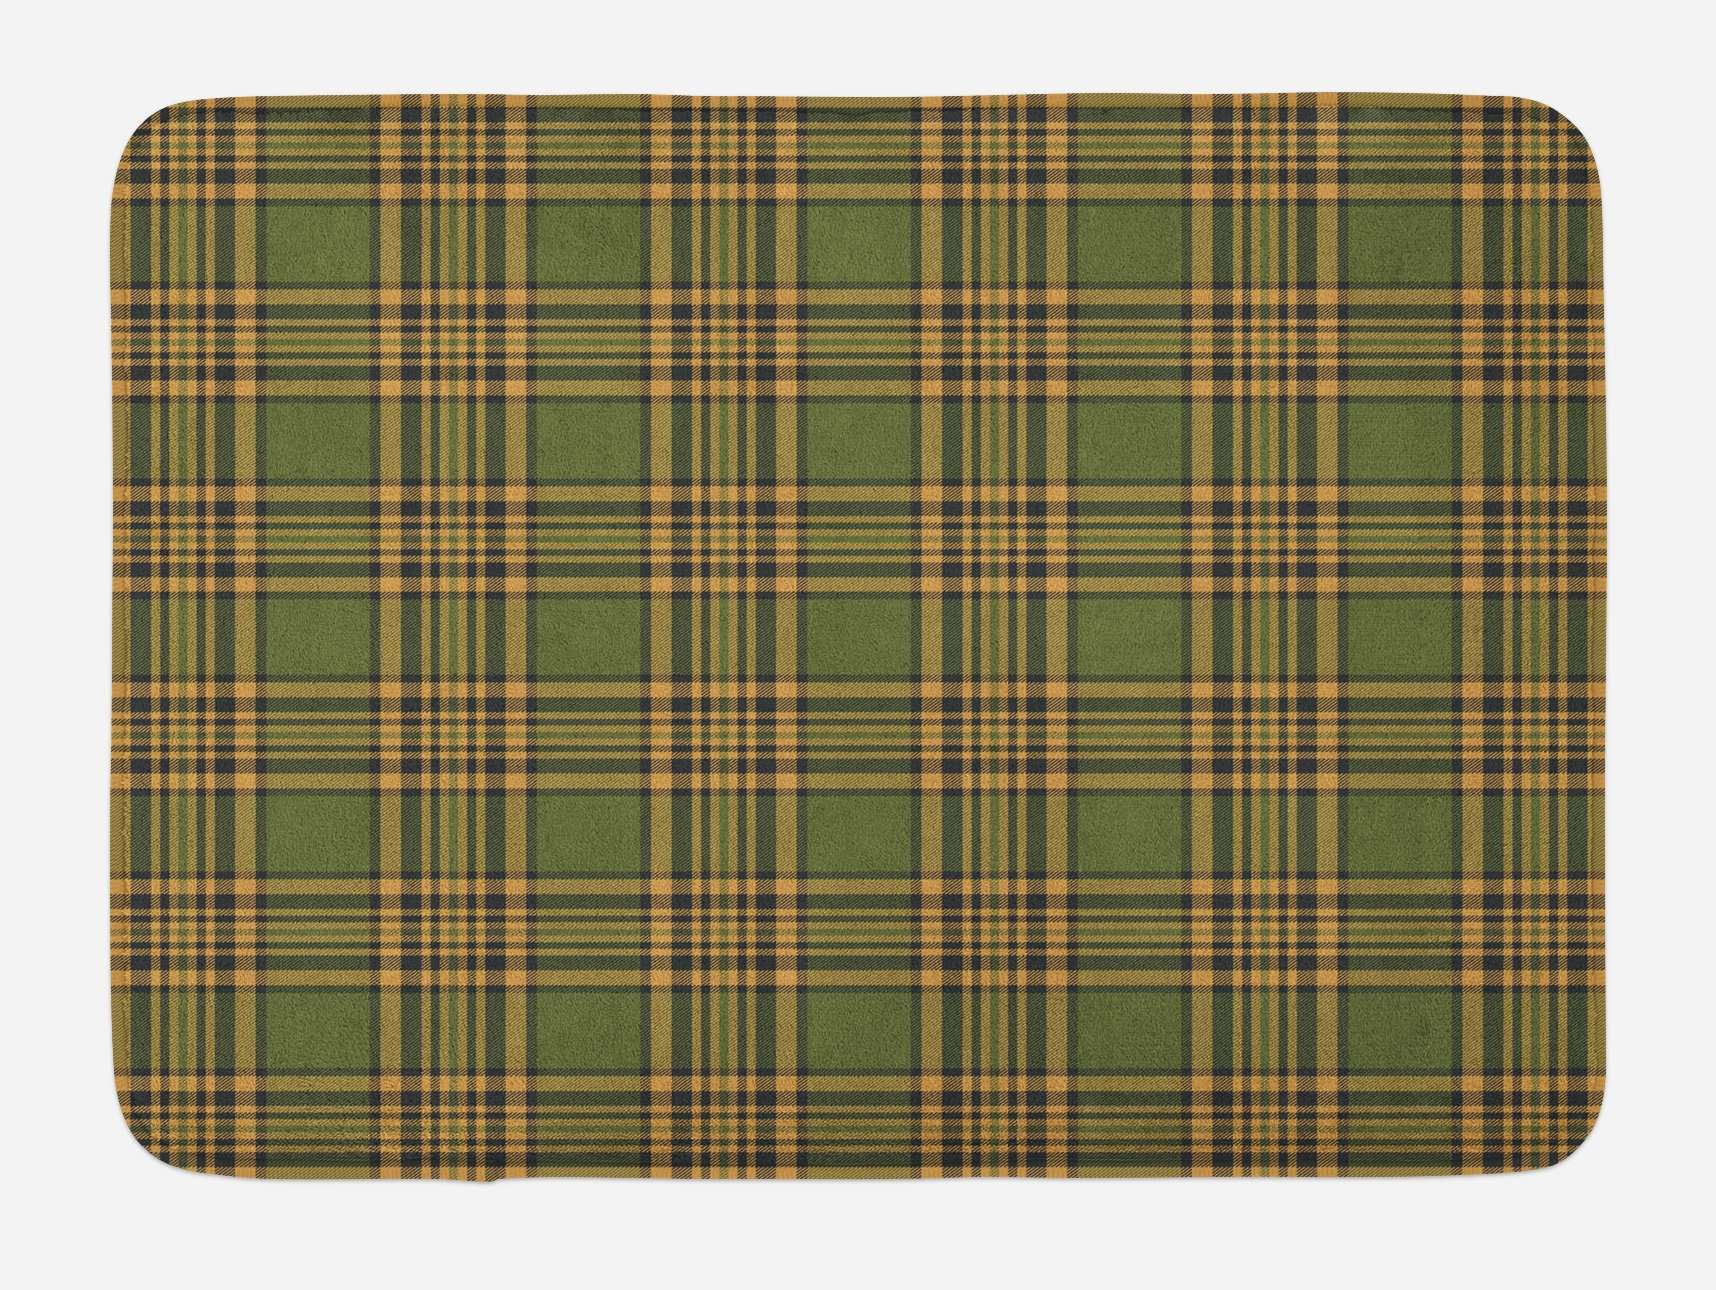 Lunarable Plaid Bath Mat, Tartan Pattern in Autumn Tones Old Fashioned Design Country Illustration, Plush Bathroom Decor Mat with Non Slip Backing, 29.5 W X 17.5 W Inches, Olive Green Mustard